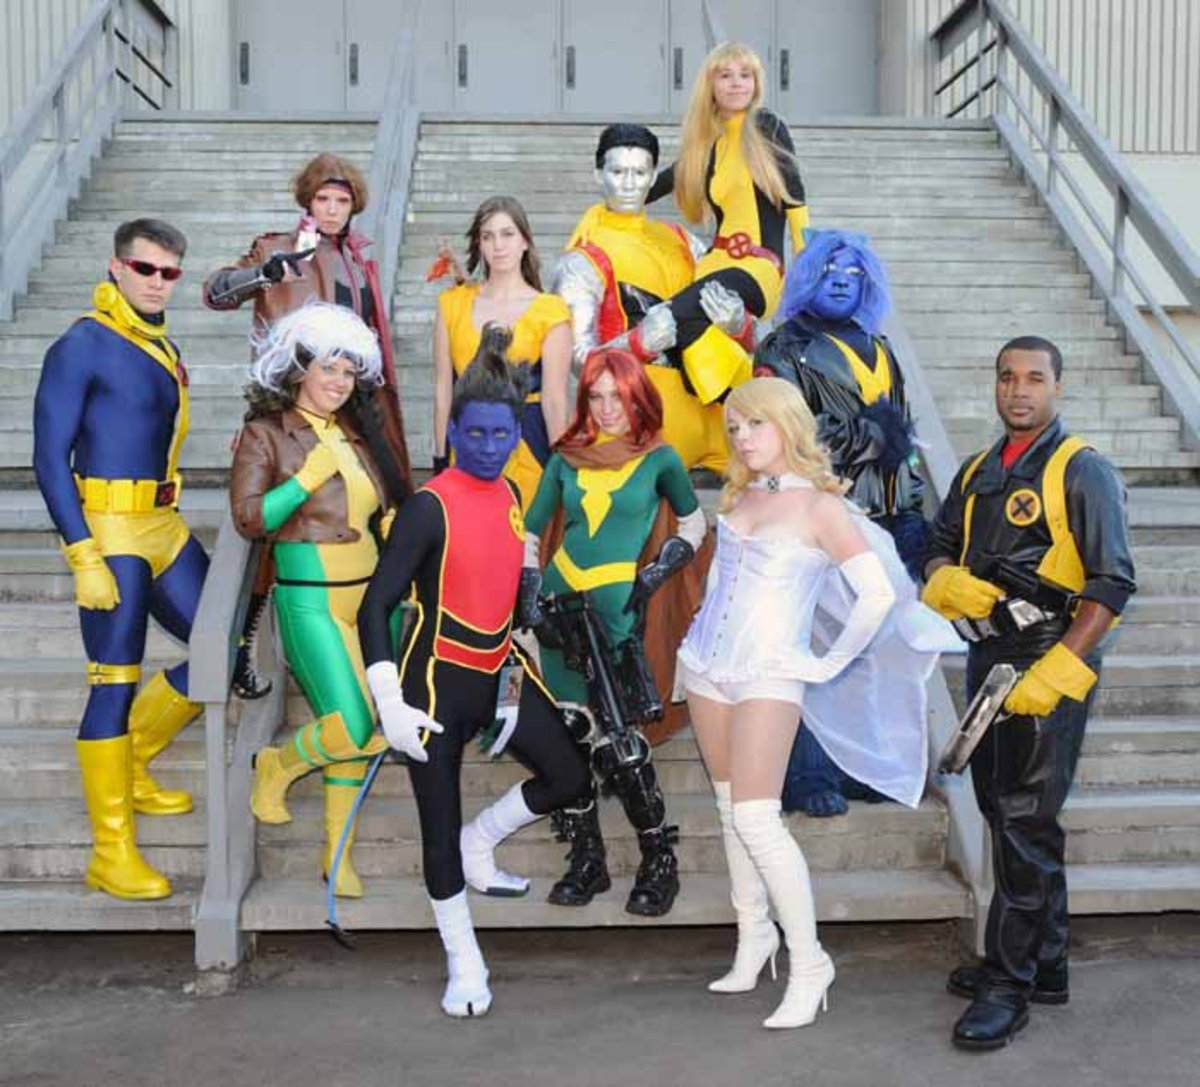 X men costume ideas and inspiration hubpages source solutioingenieria Images